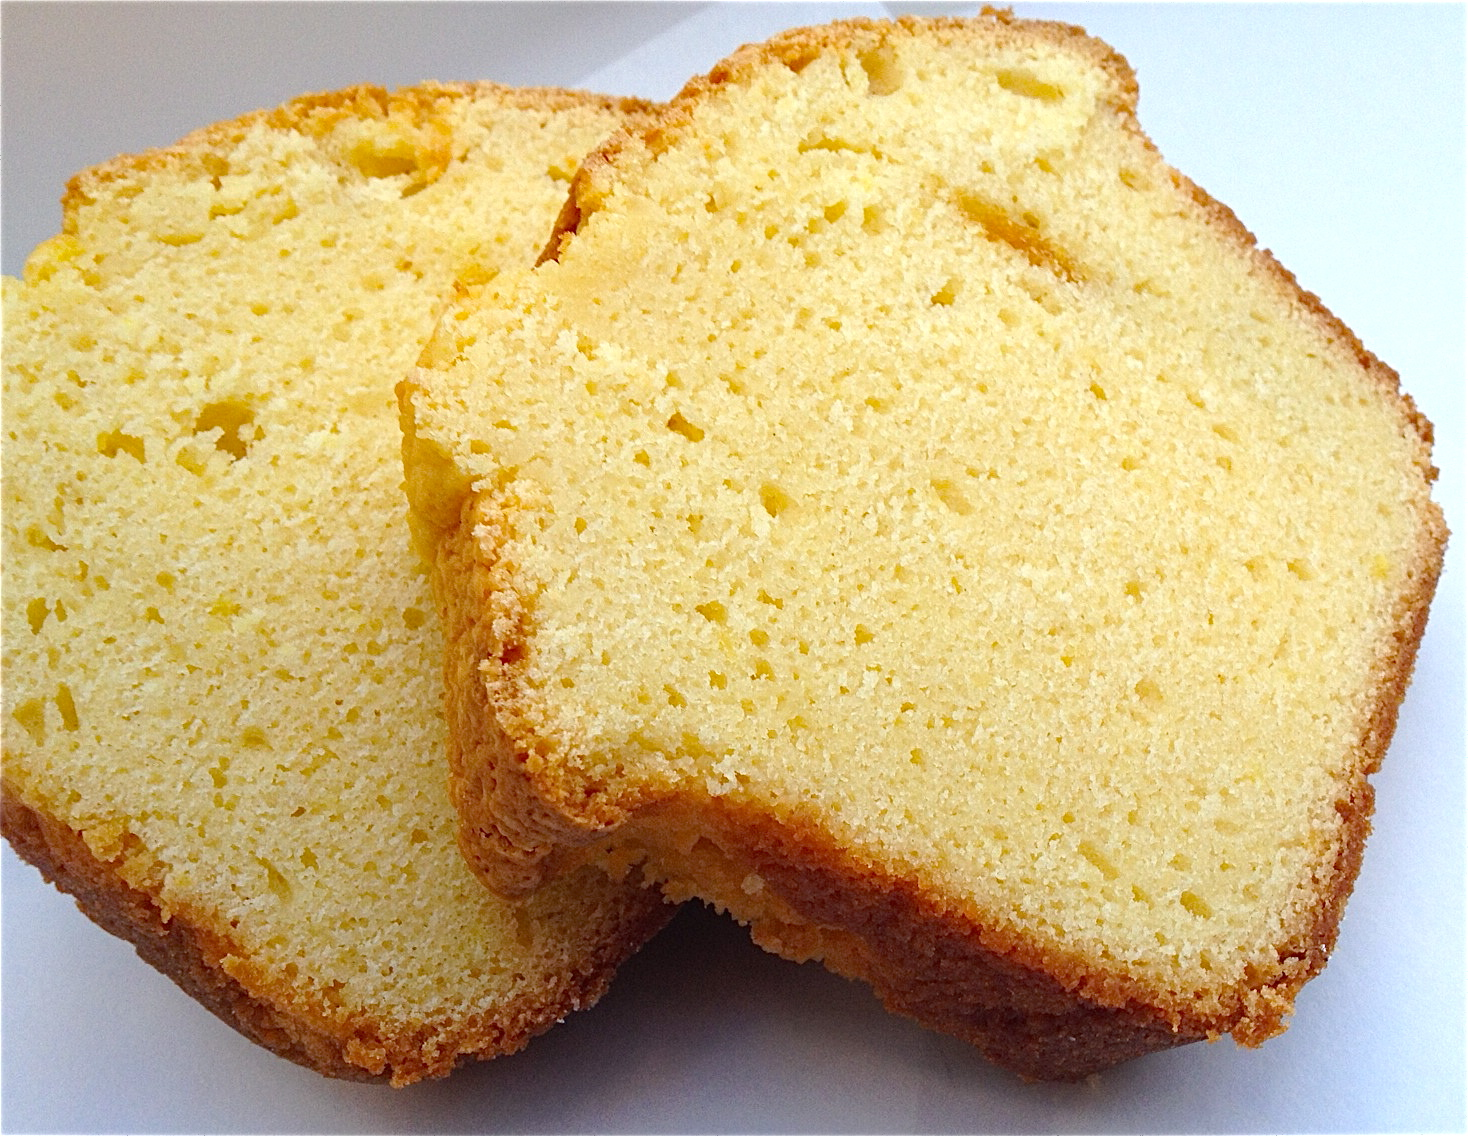 sour cream 6 large eggs sour cream pound cake sour cream pound cake ...